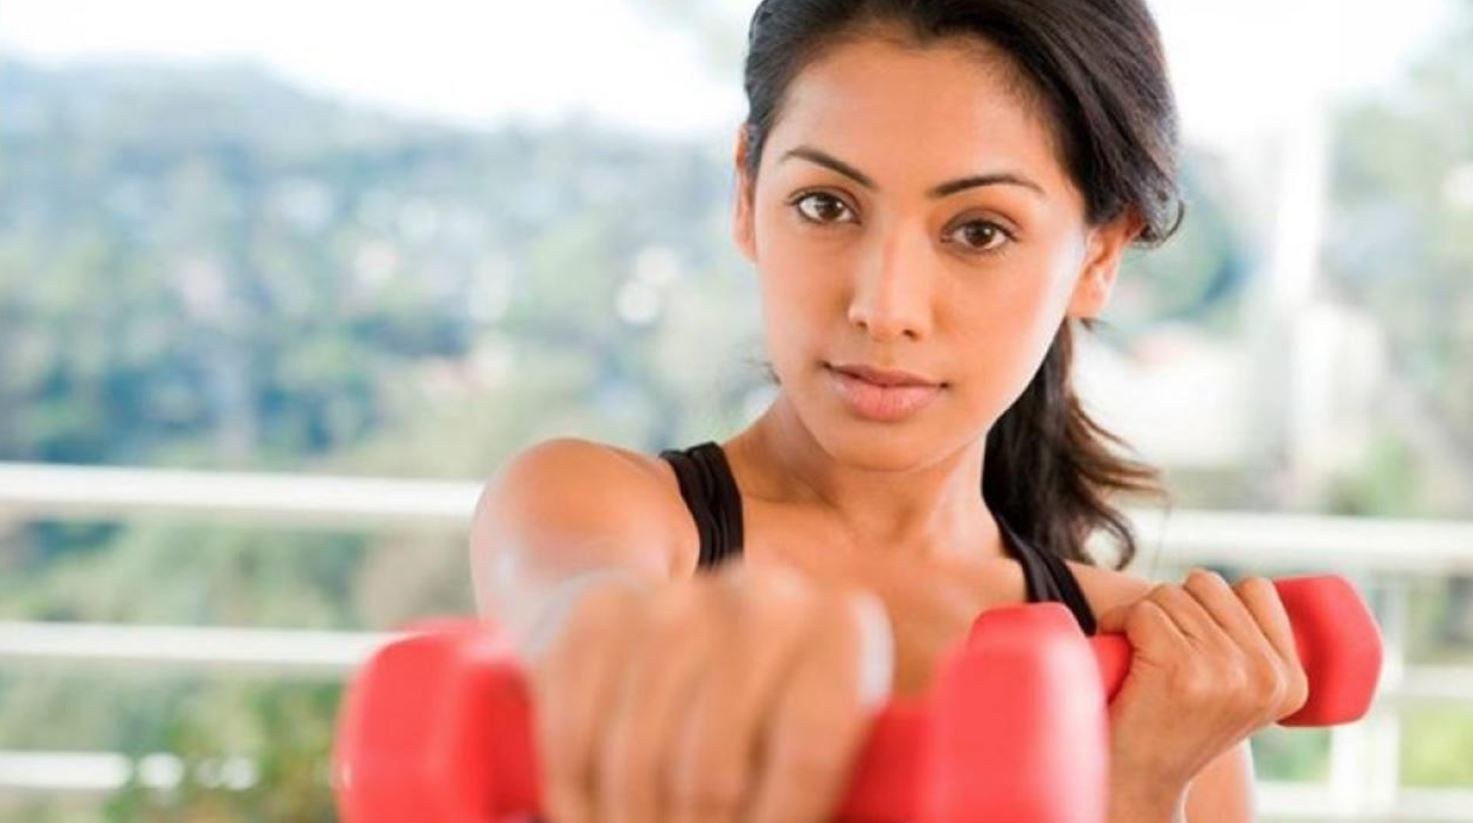 Shadow Boxing With Weights For Fat Loss